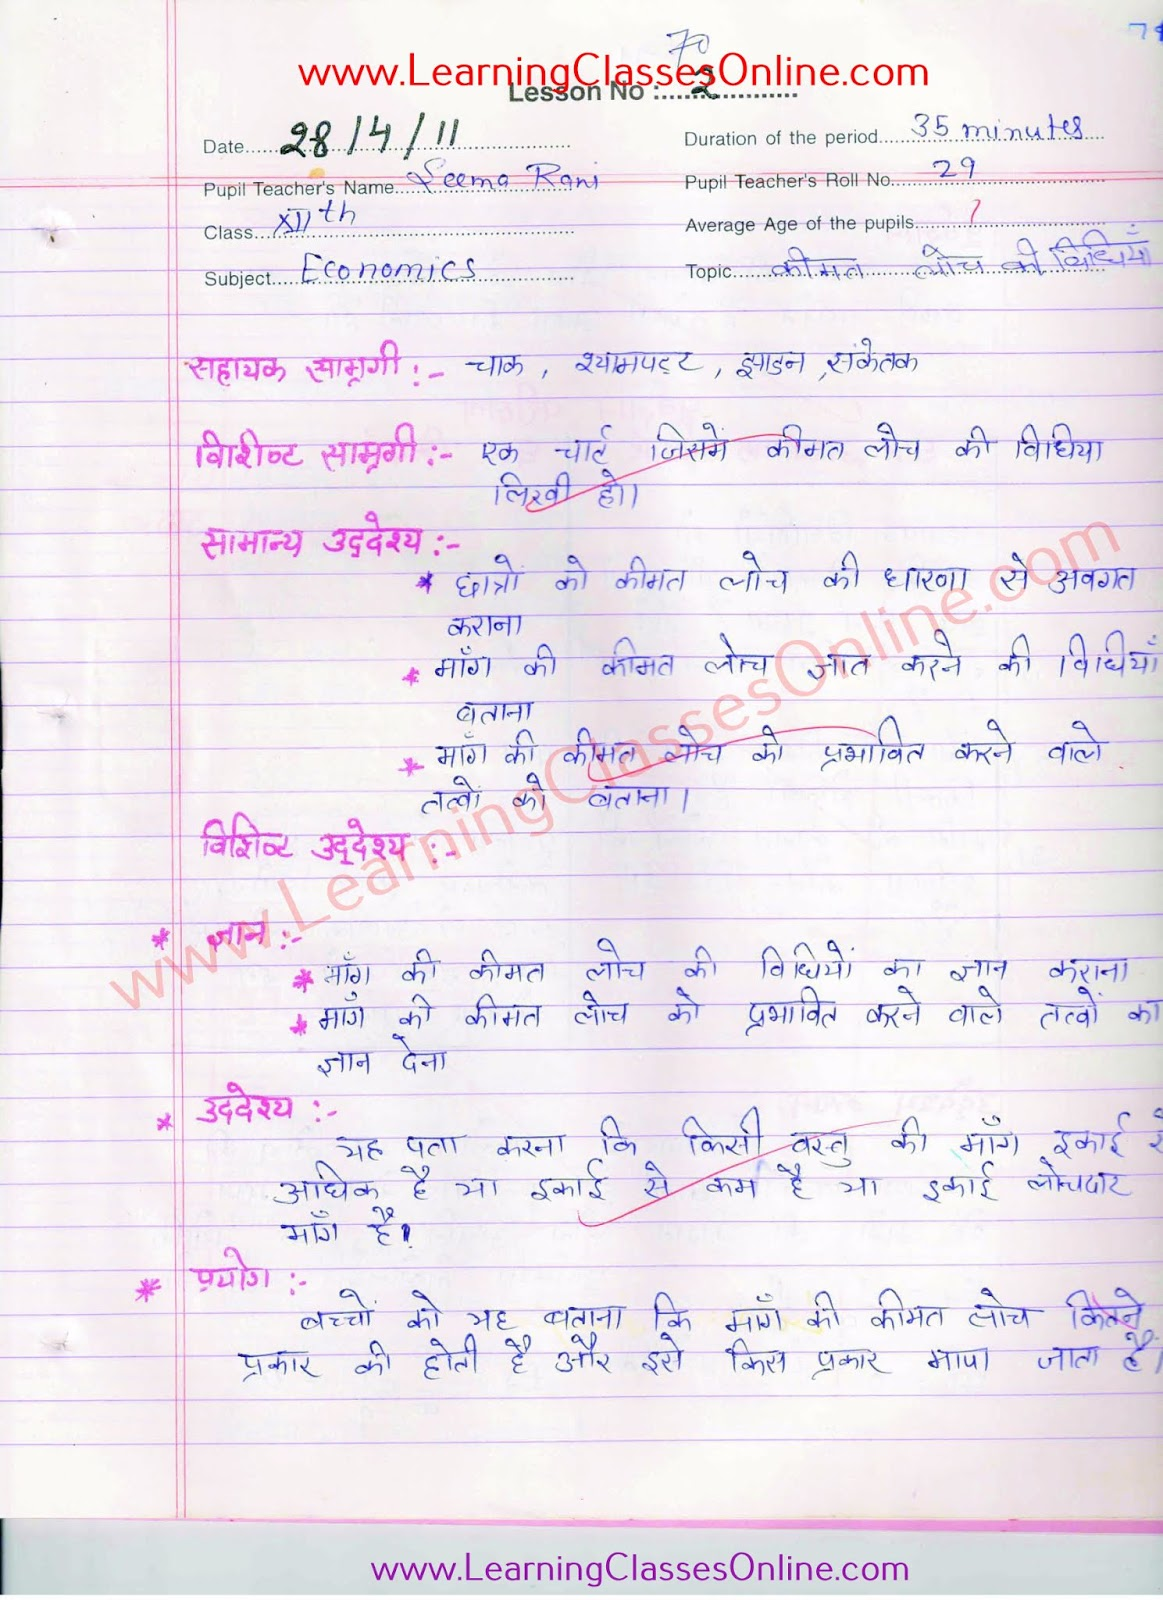 Lesson Plan for Economics Class 12 in Hindi on कीमत लोच ( Price Elasticity) free download pdf